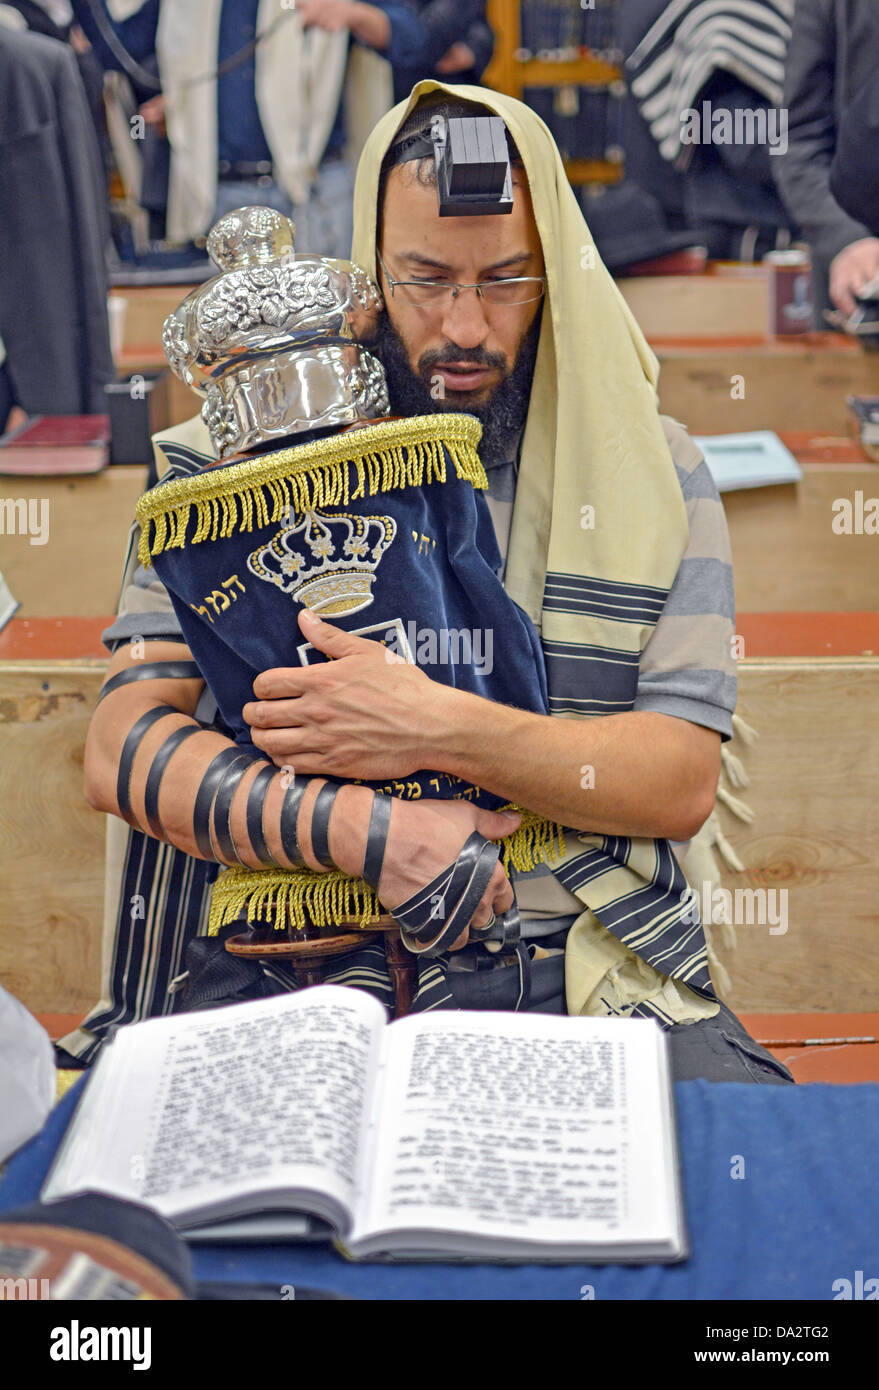 A man wearing a prayer shawl & phylacteries holding a Torah during weekday morning services at Lubavitch  headquarters Stock Photo